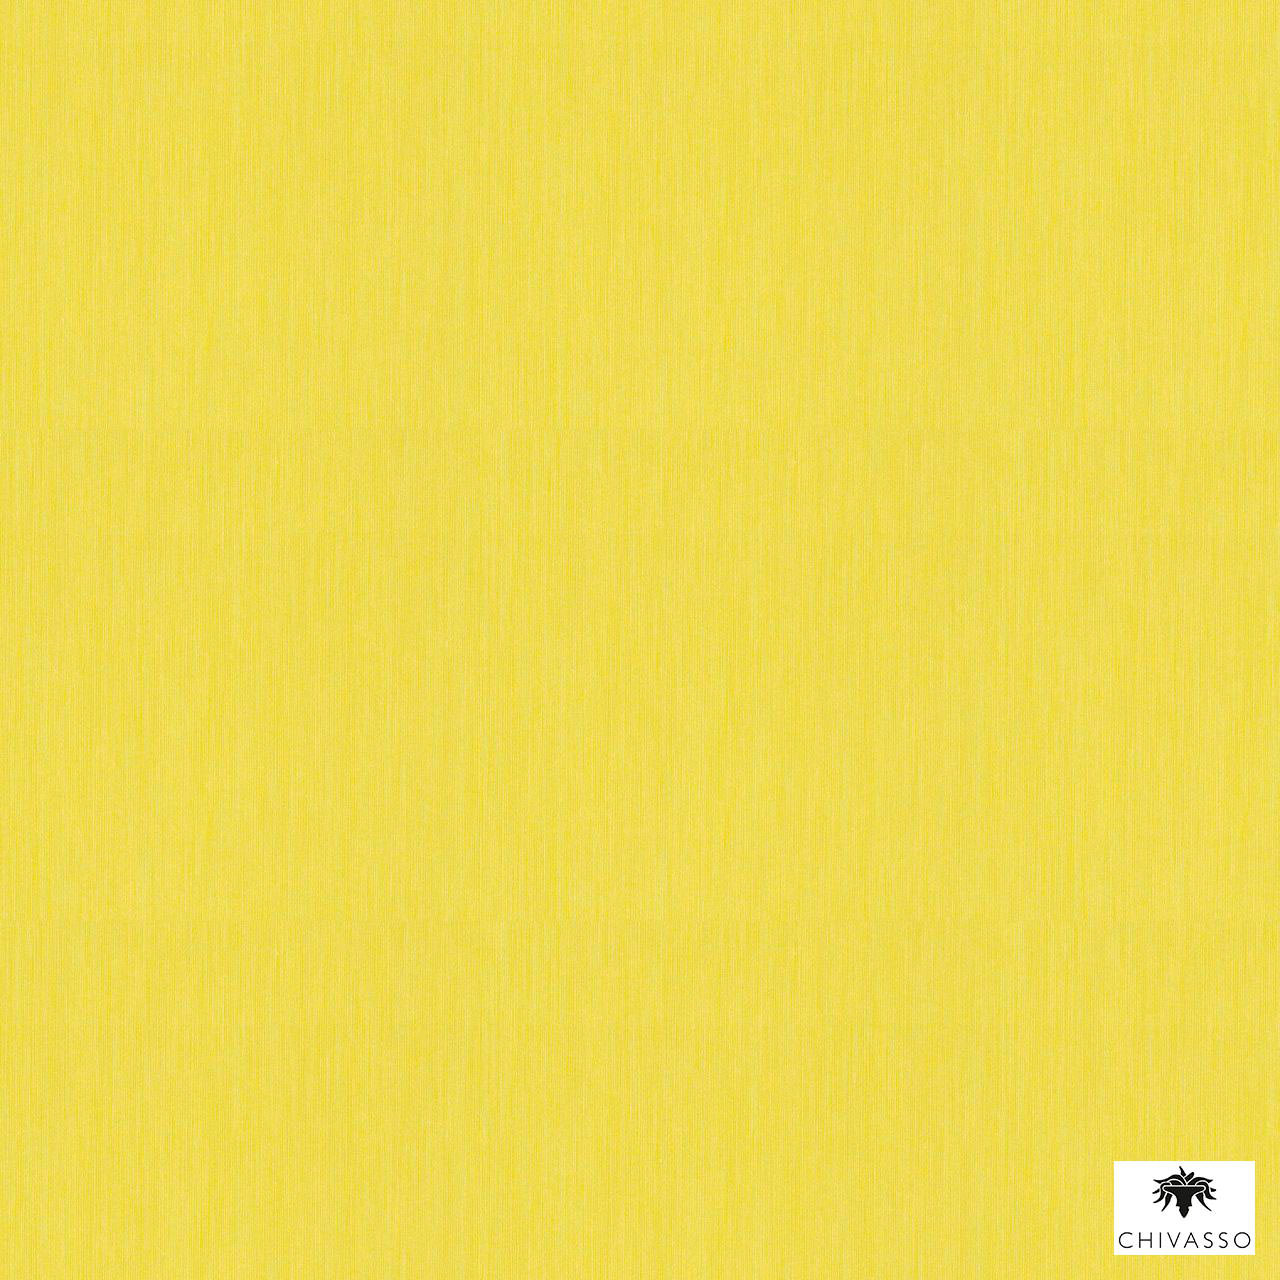 Chivasso - Colour Block - Ch9112-040  | Wallpaper, Wallcovering - Gold,  Yellow, Plain, Domestic Use